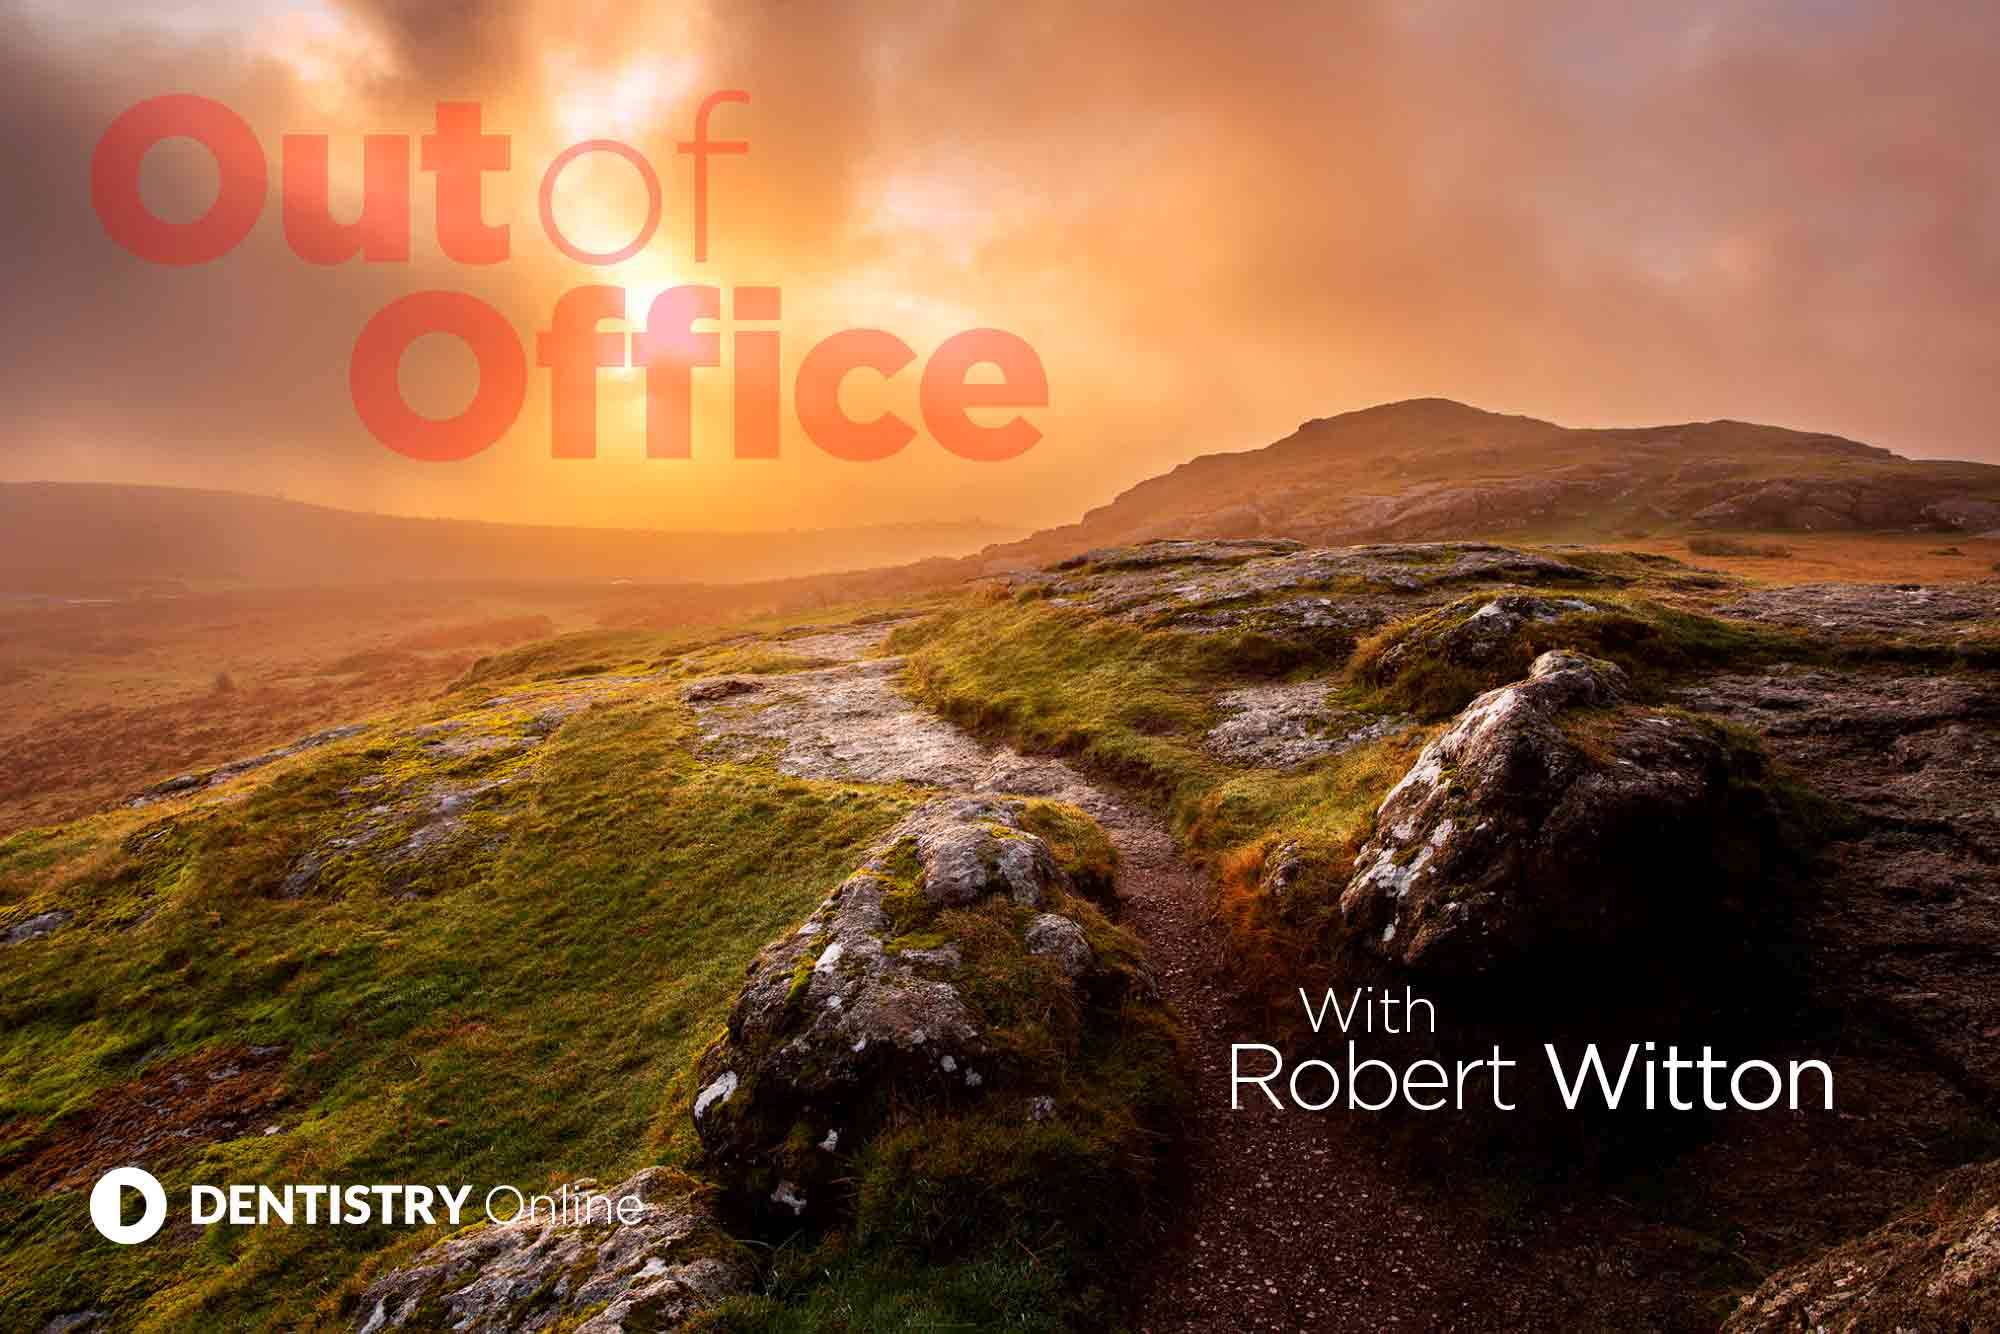 Robert Witton discusses why living in Plymouth helps him to maintain a healthy work-life balance